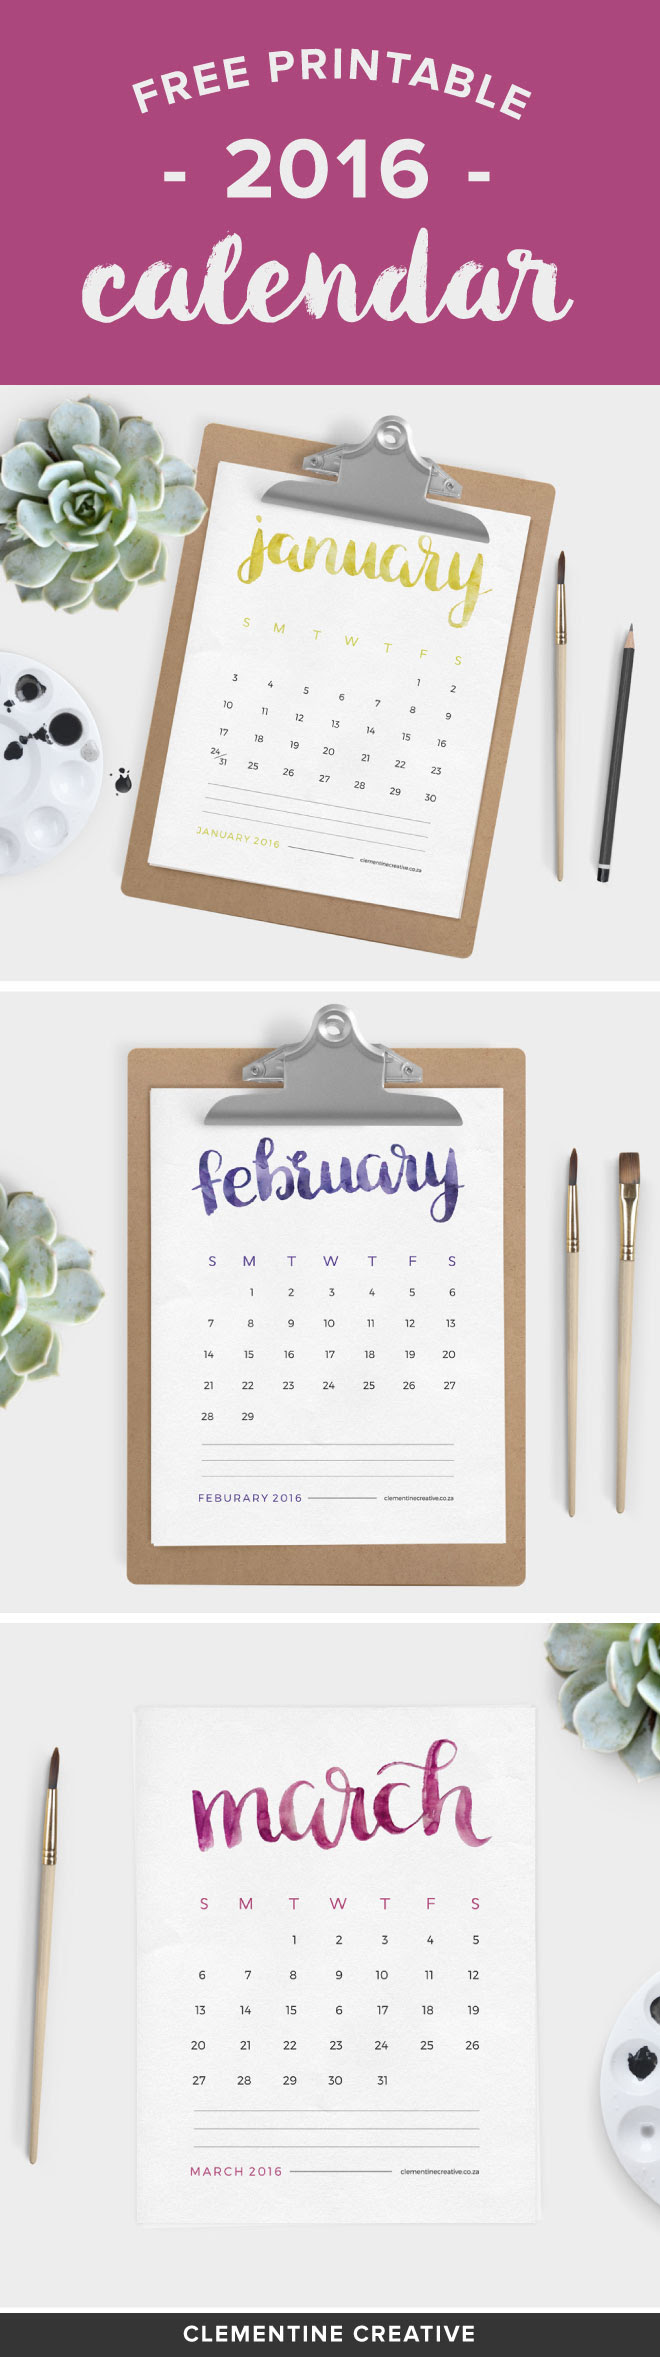 This free printable 2016 calendar will brighten up your desk area. Each month name is painted by hand with watercolour paint. Click here to download this calendar.